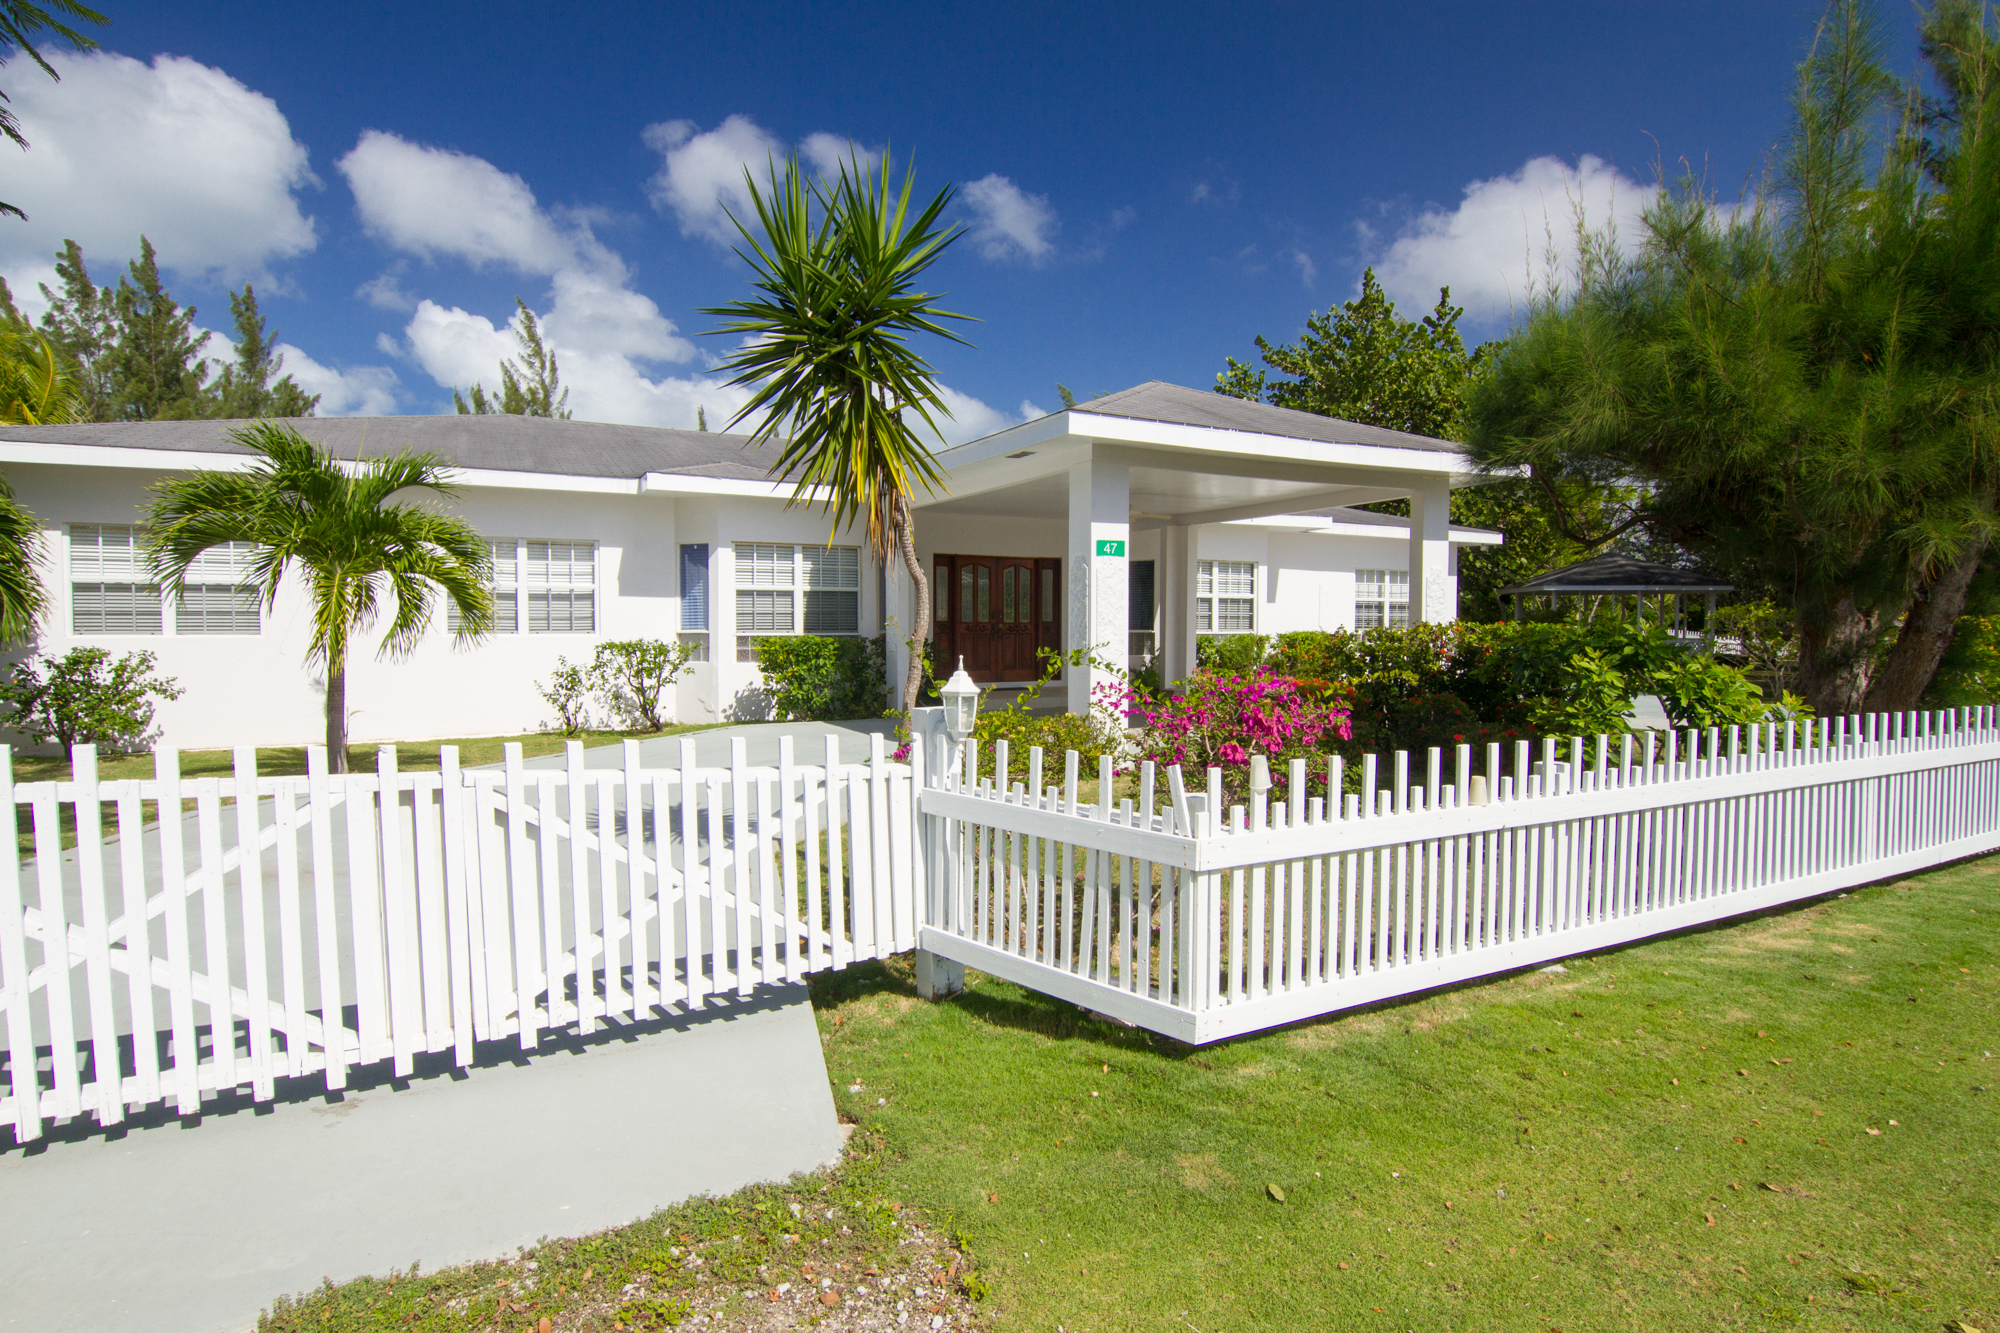 Single Family Home for Sale at Plantation Home Satinwood St #47 George Town, KY1 Cayman Islands